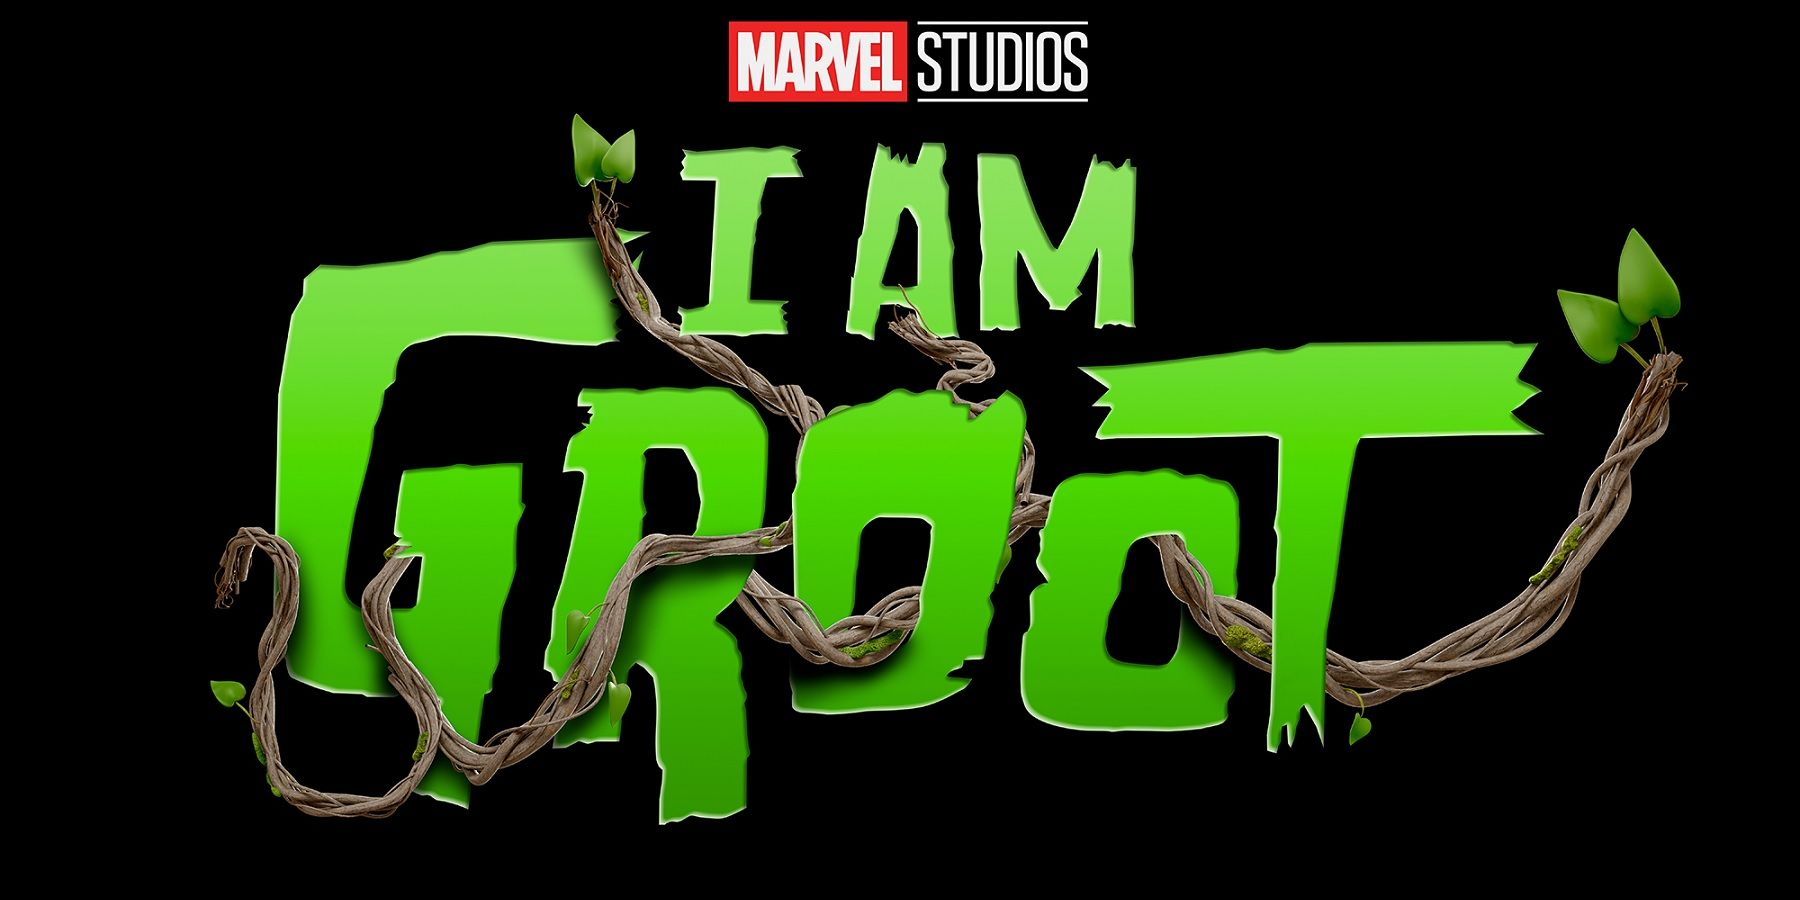 Baby Groot to Star in Original Series of Shorts for Disney+ | CBR